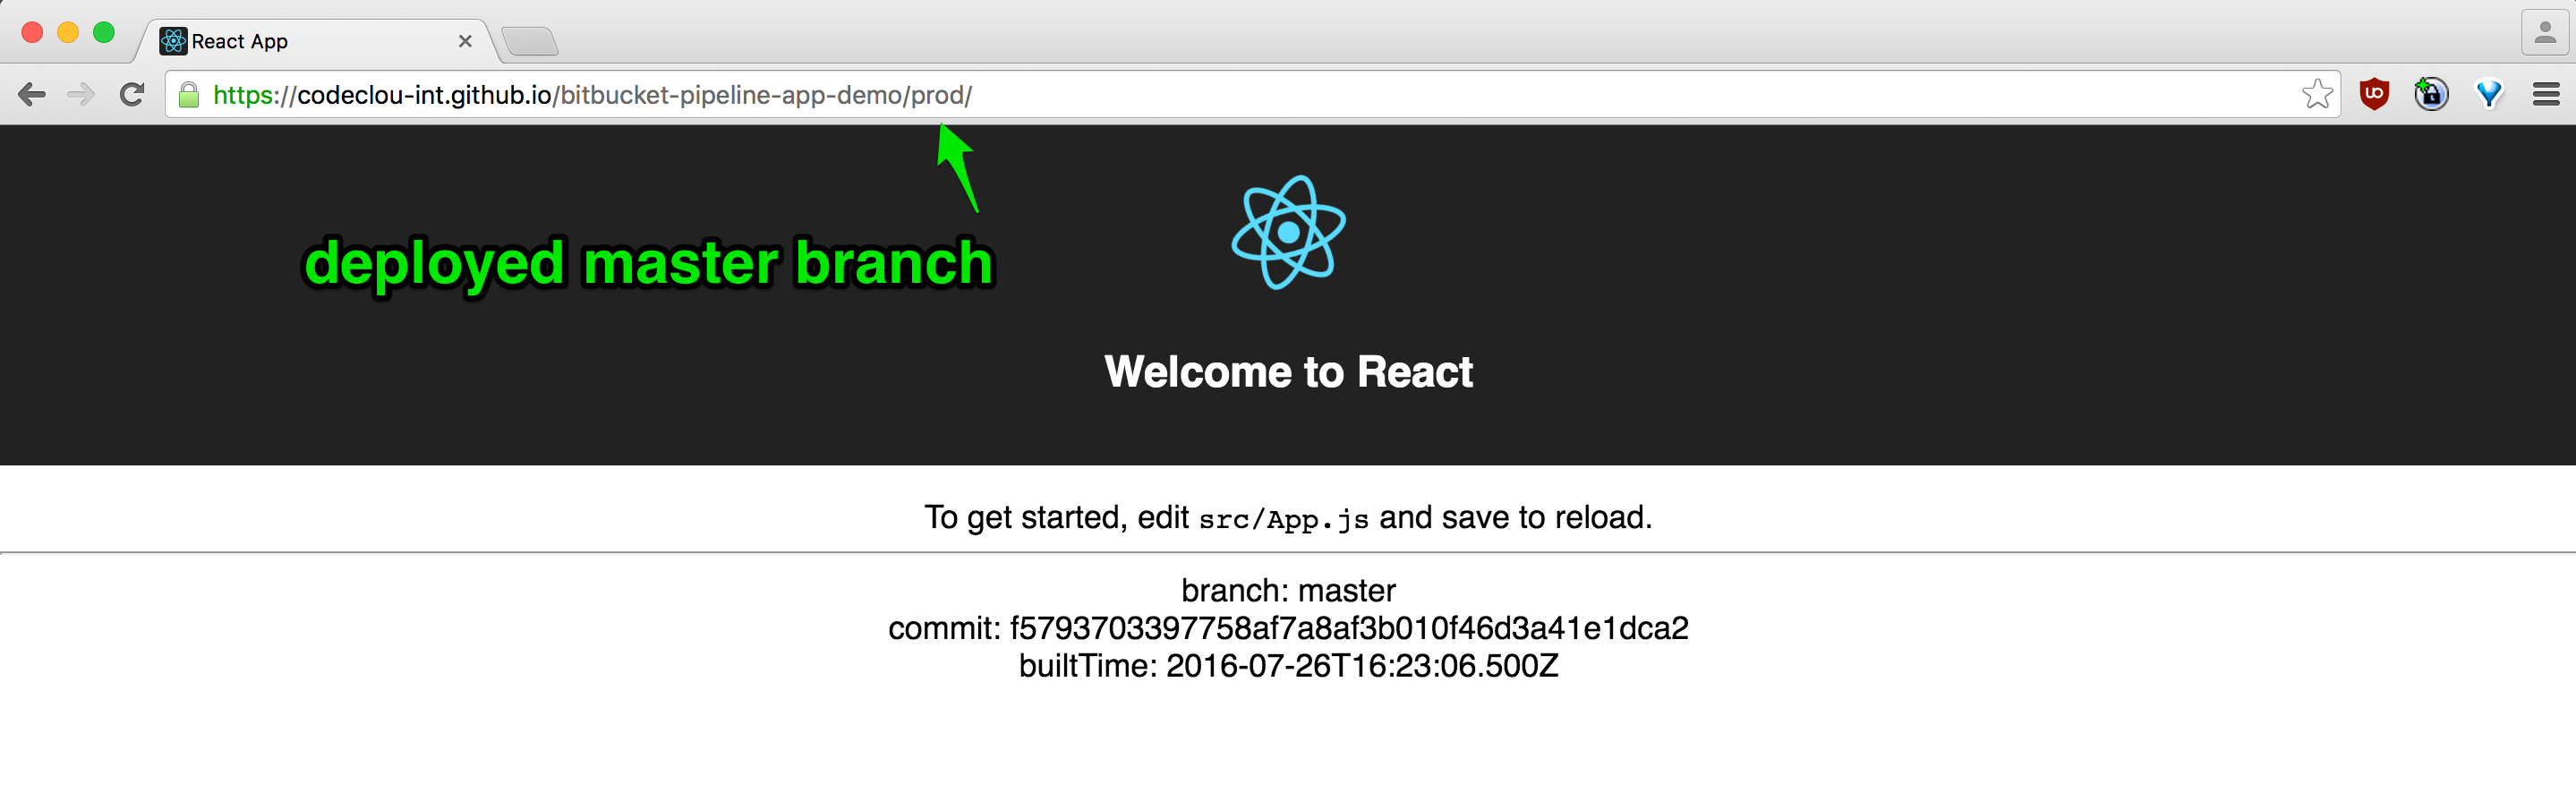 Deployed Master Branch of React App